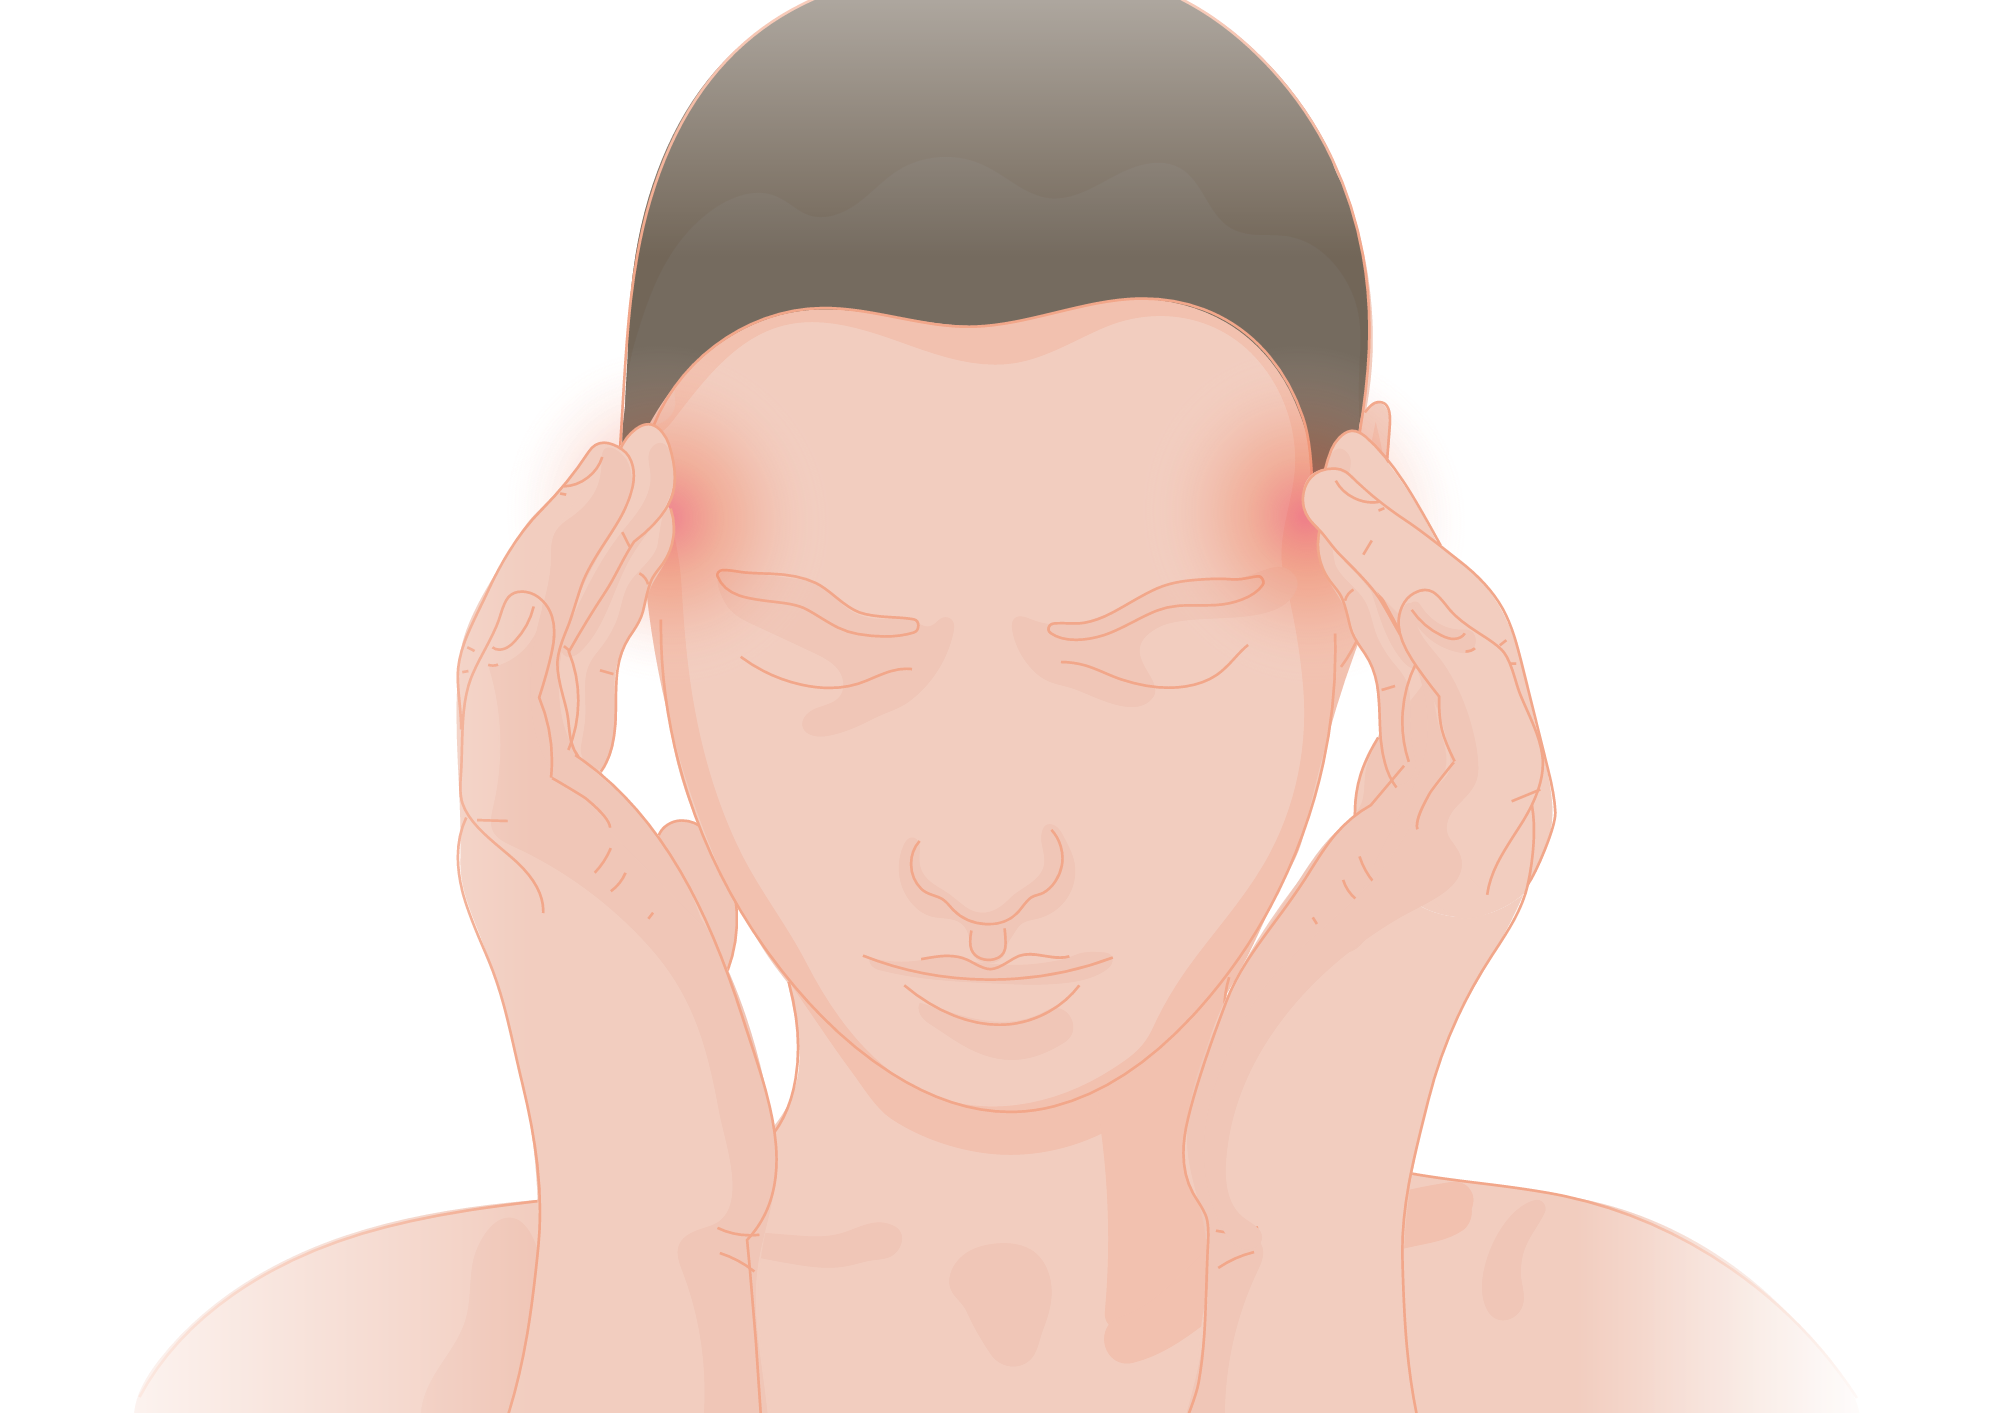 Drawing of a person with fingers on temple trying to ease headache